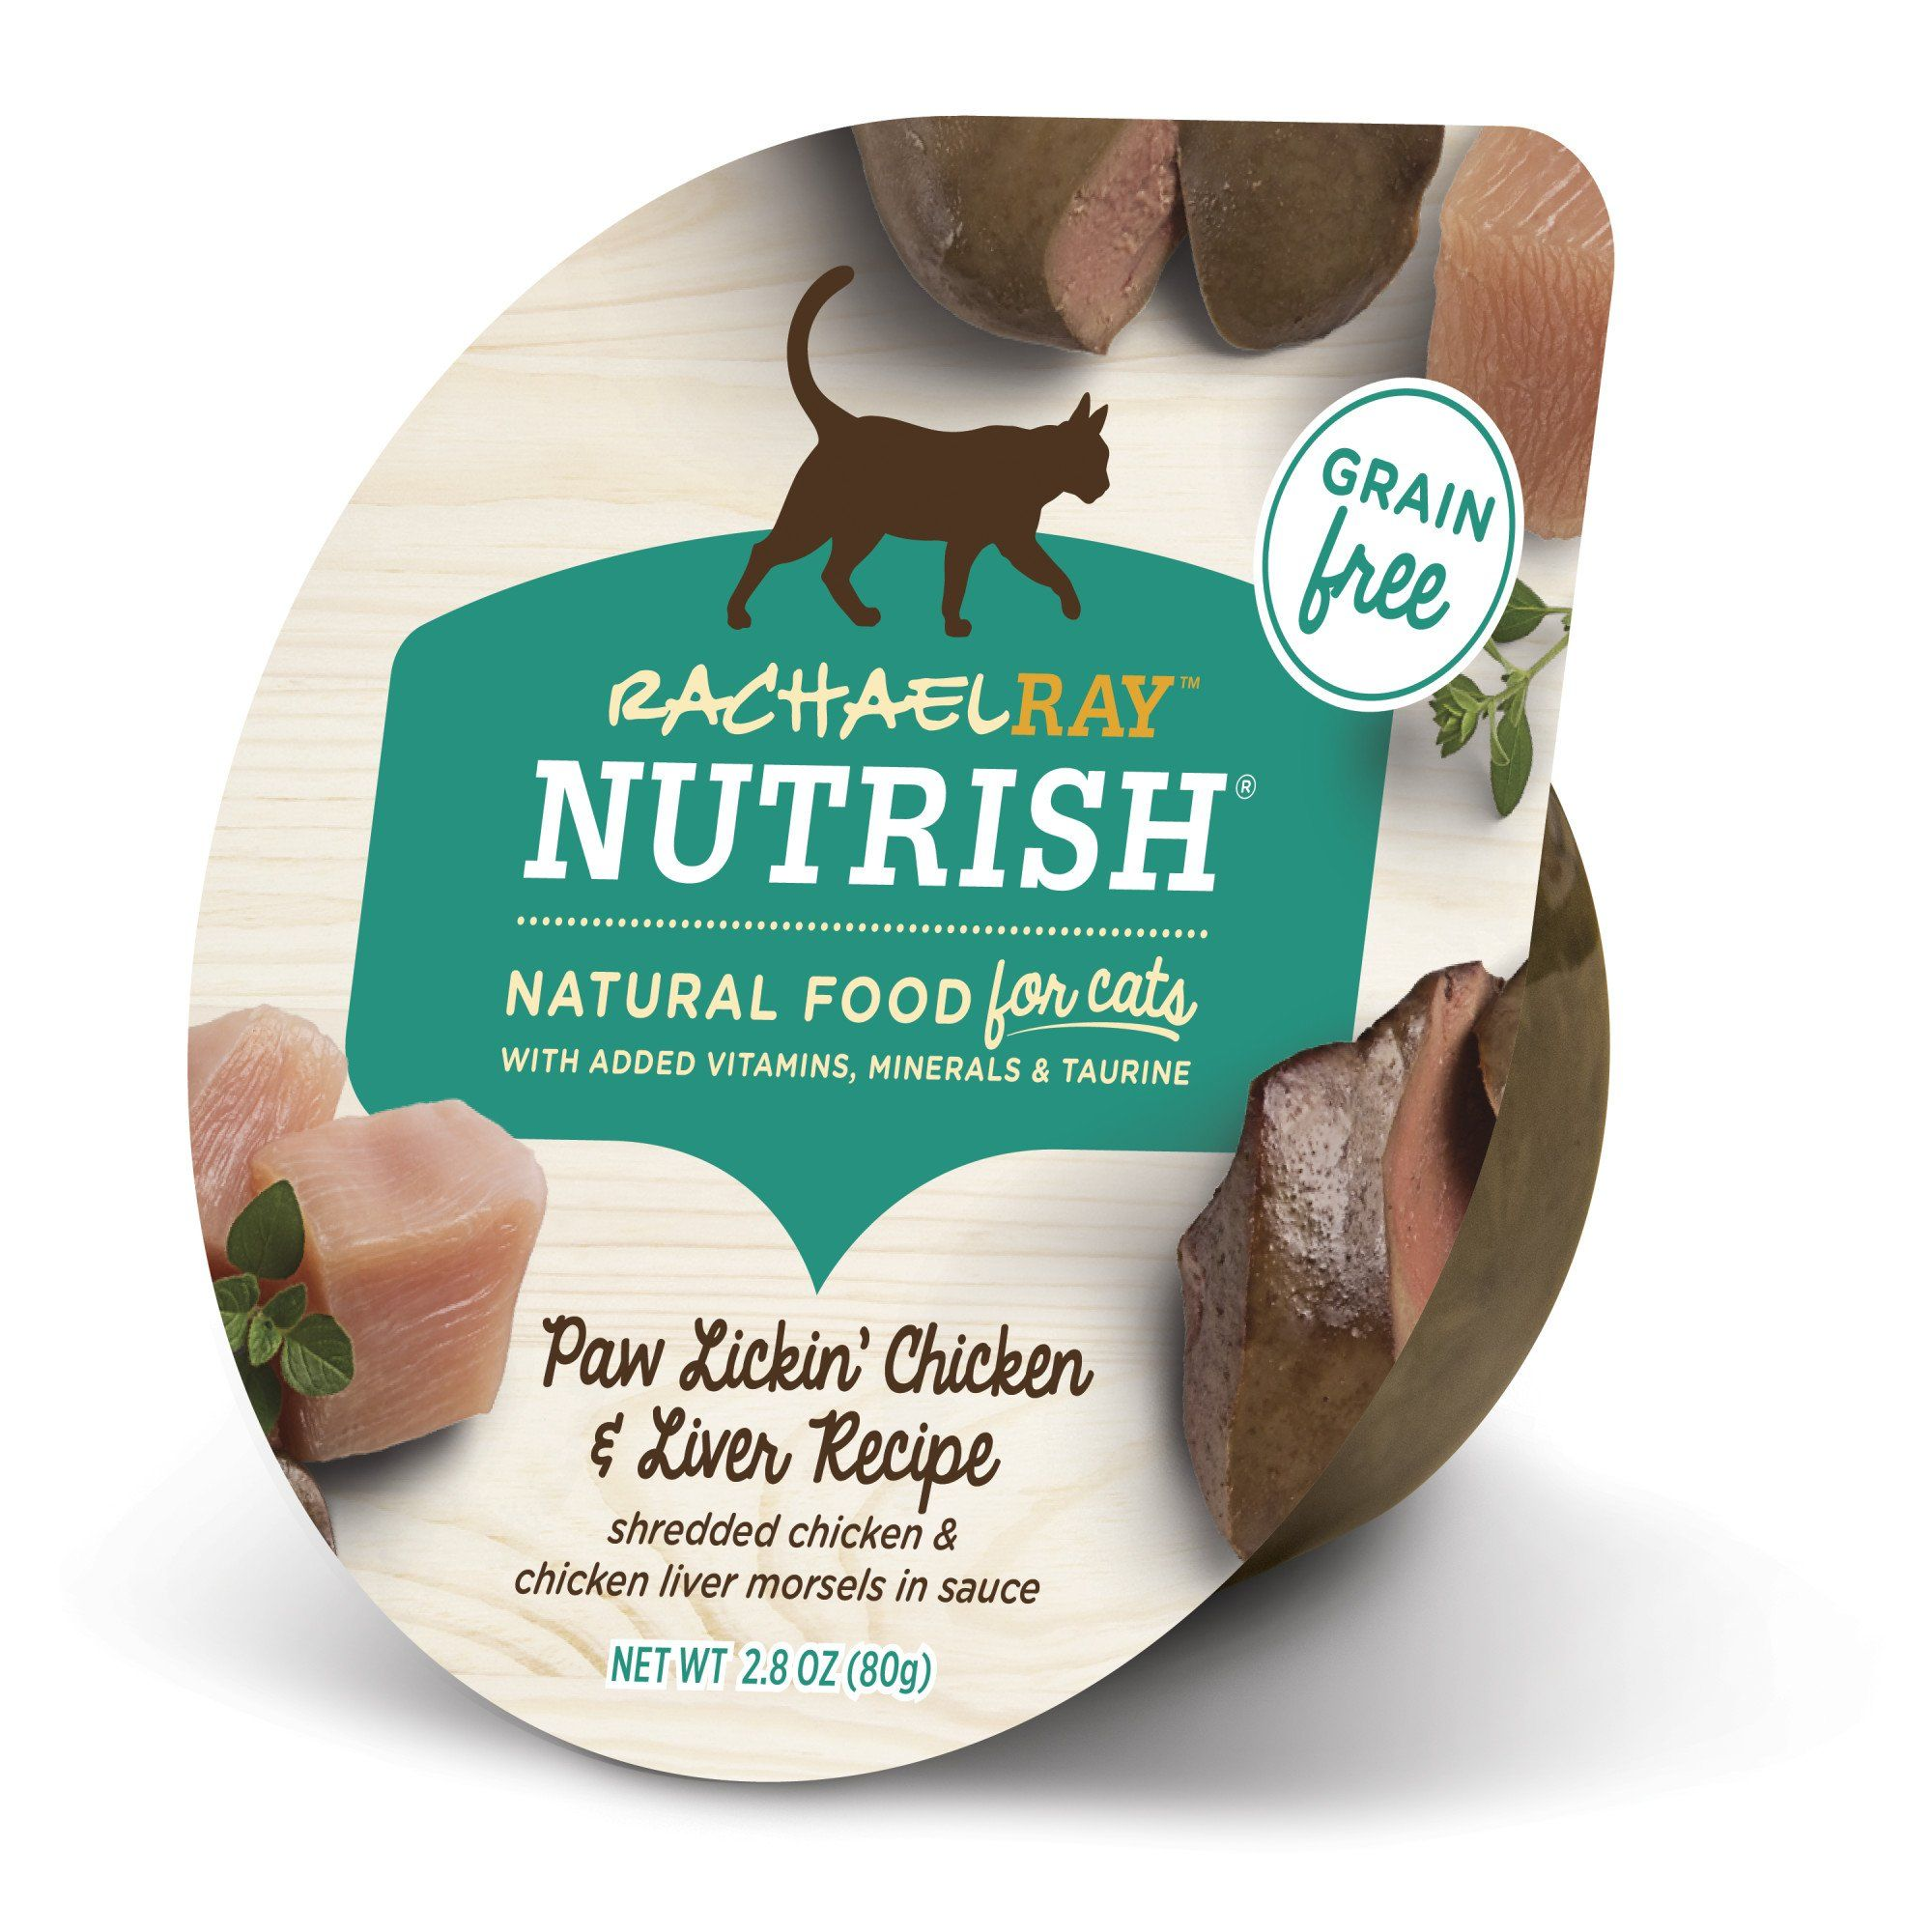 Rachael Ray Nutrish Natural Grain Free Paw Lickin Chicken Liver